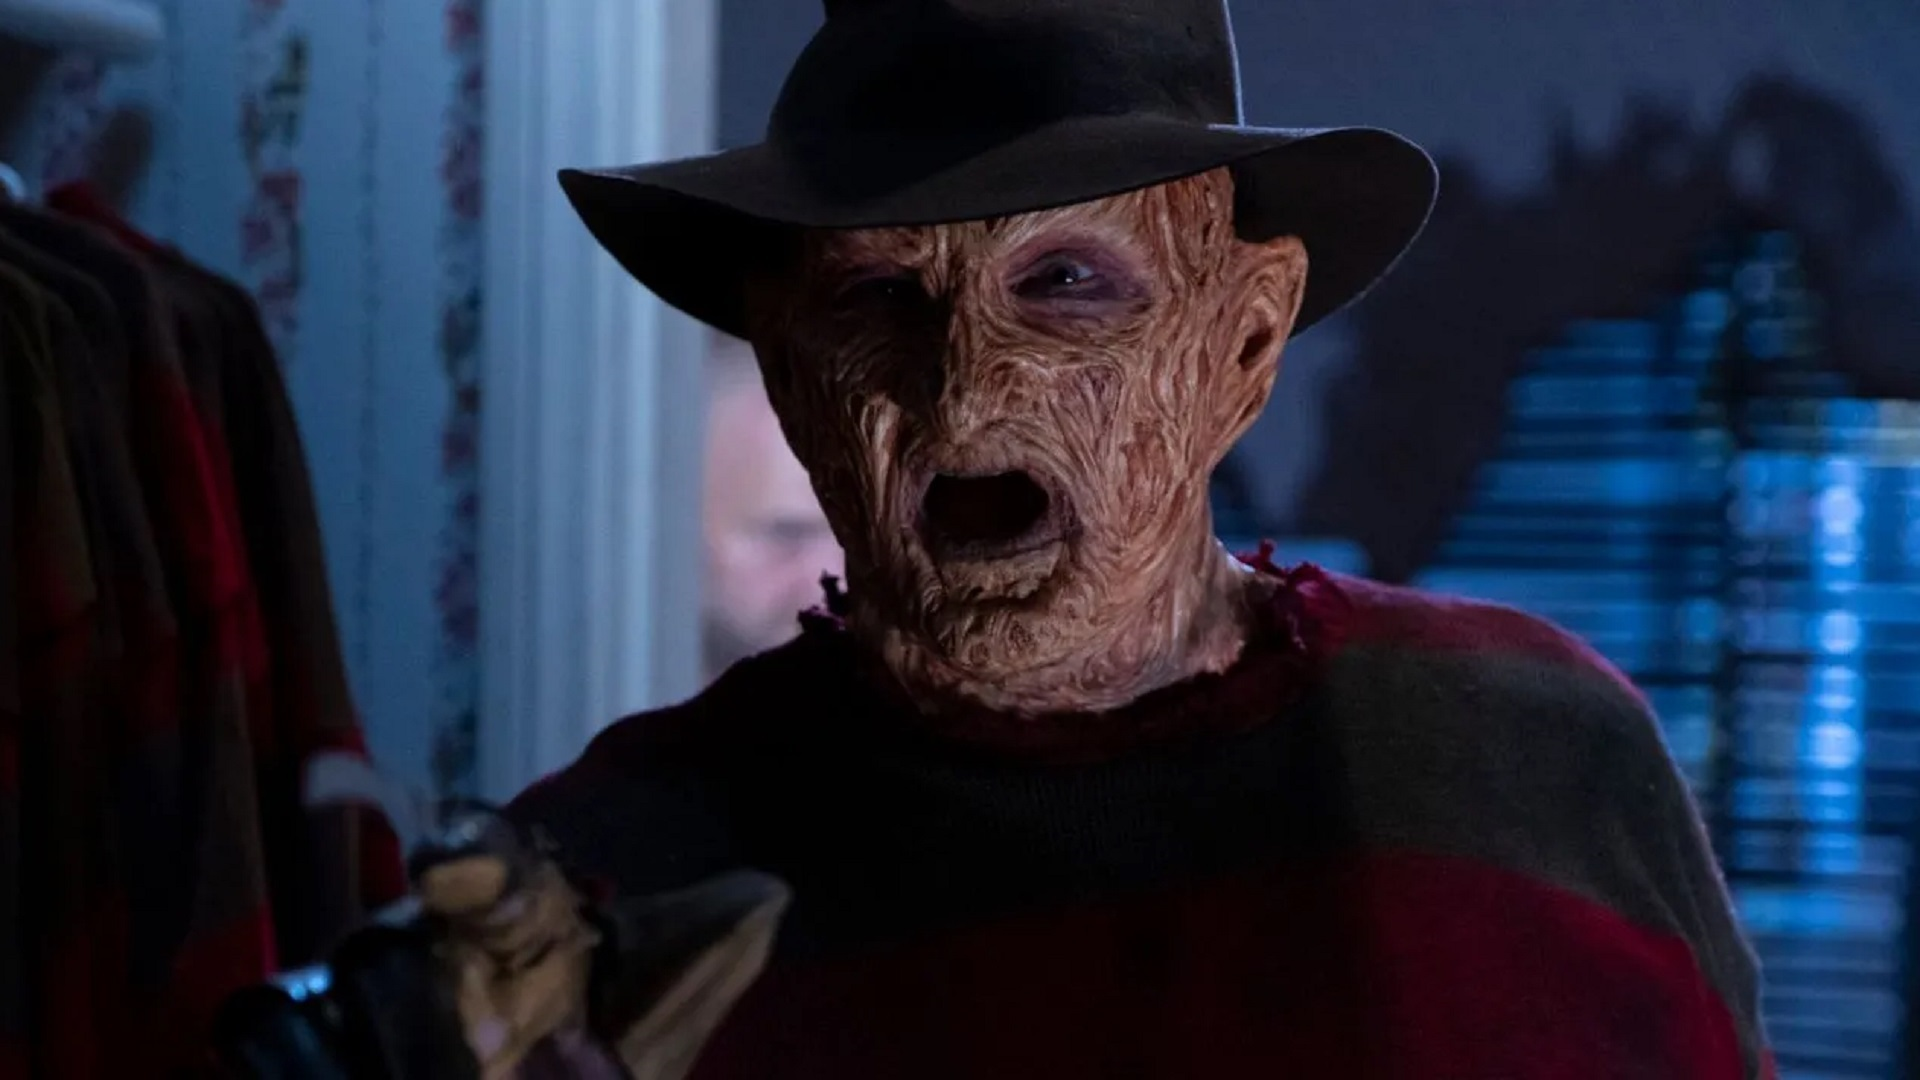 Robert Englund (Freddy Krueger) estará en Stranger Things 4